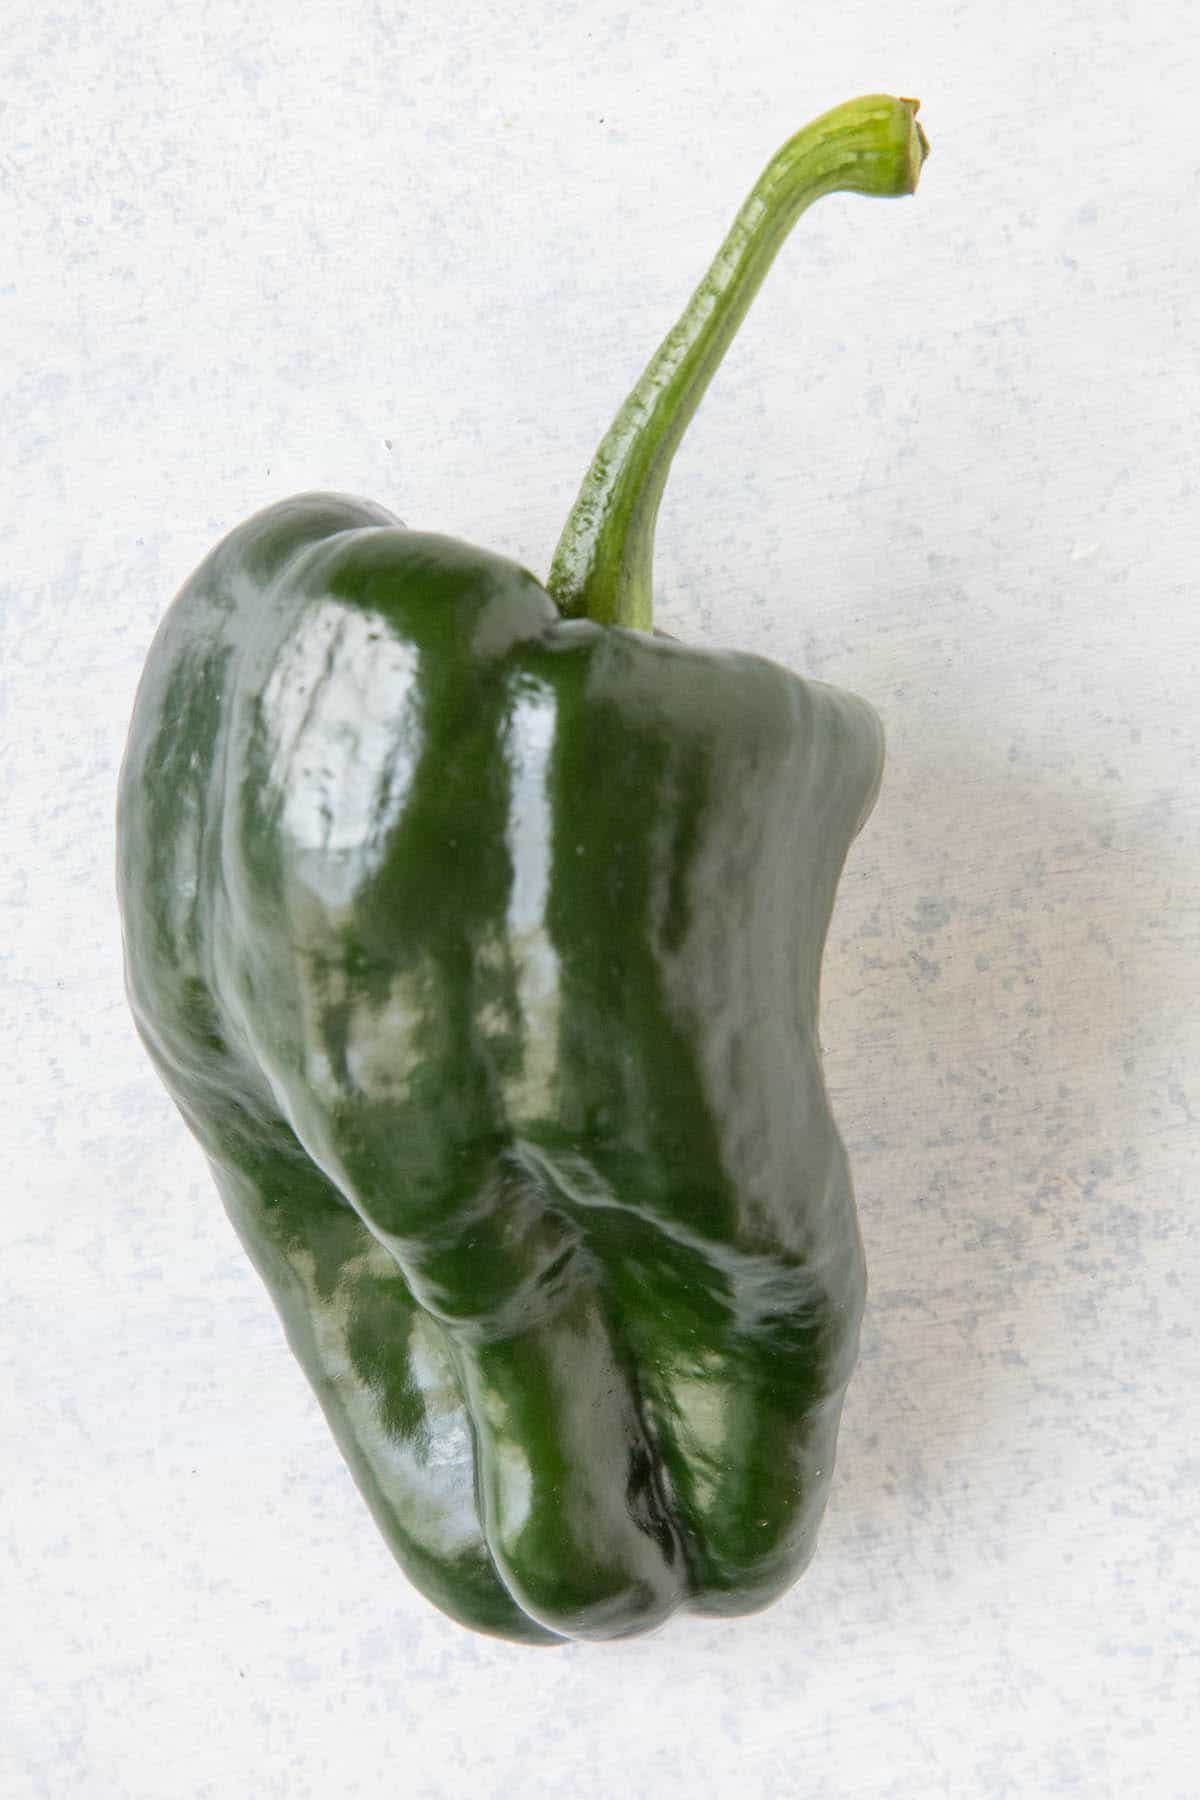 TiburonHybrid Chili Pepper - Poblano Type